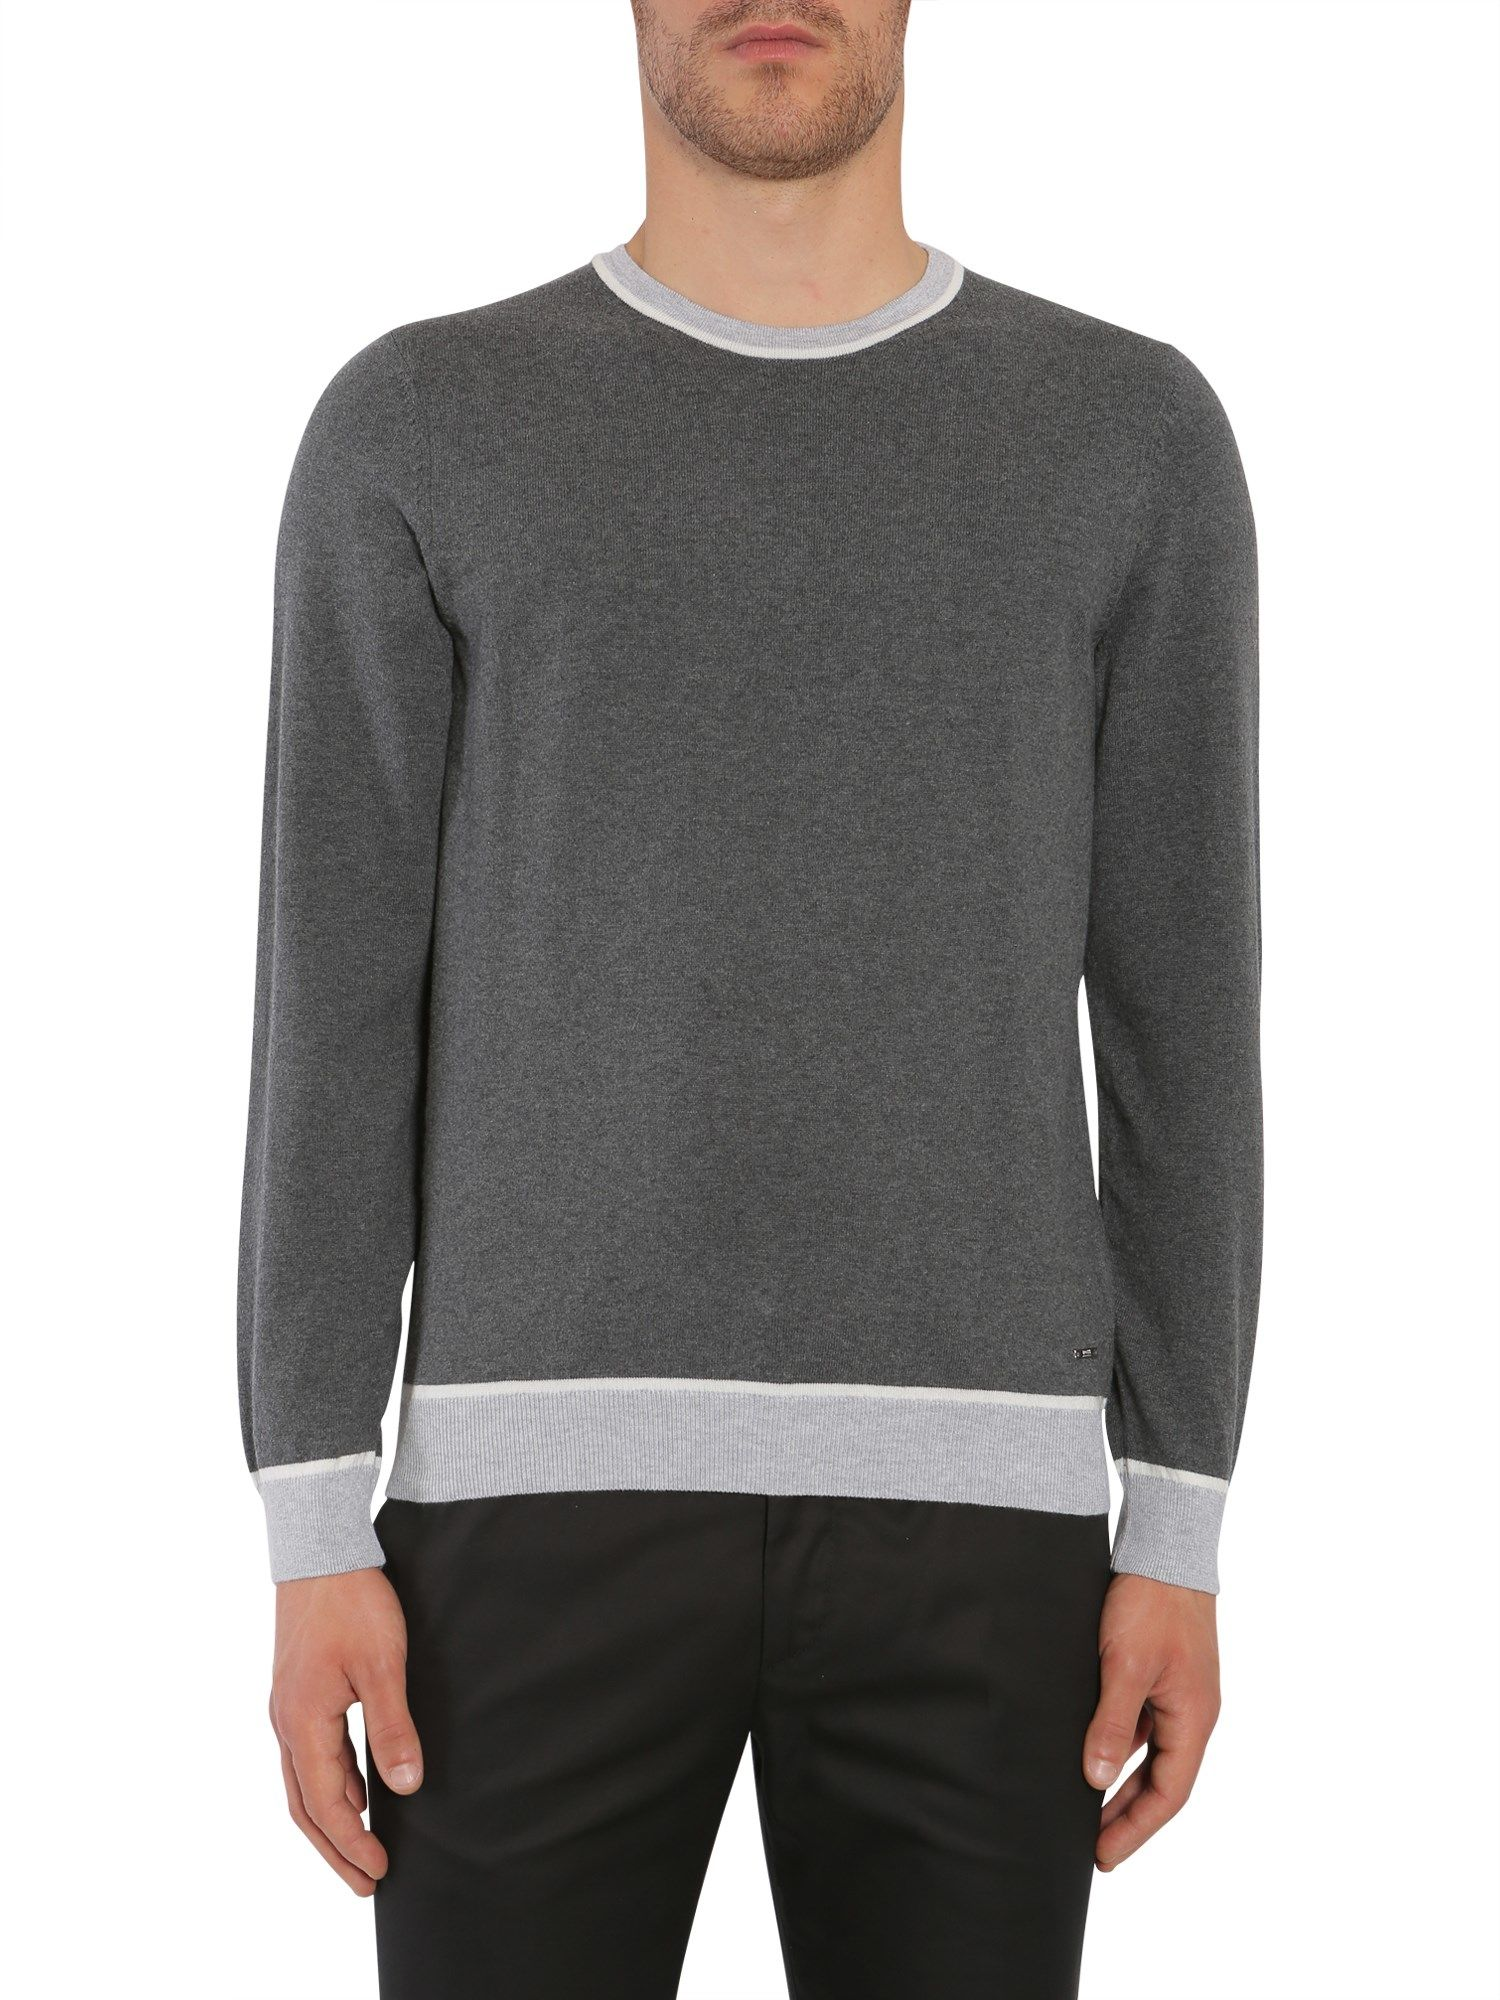 Marcelli Sweater